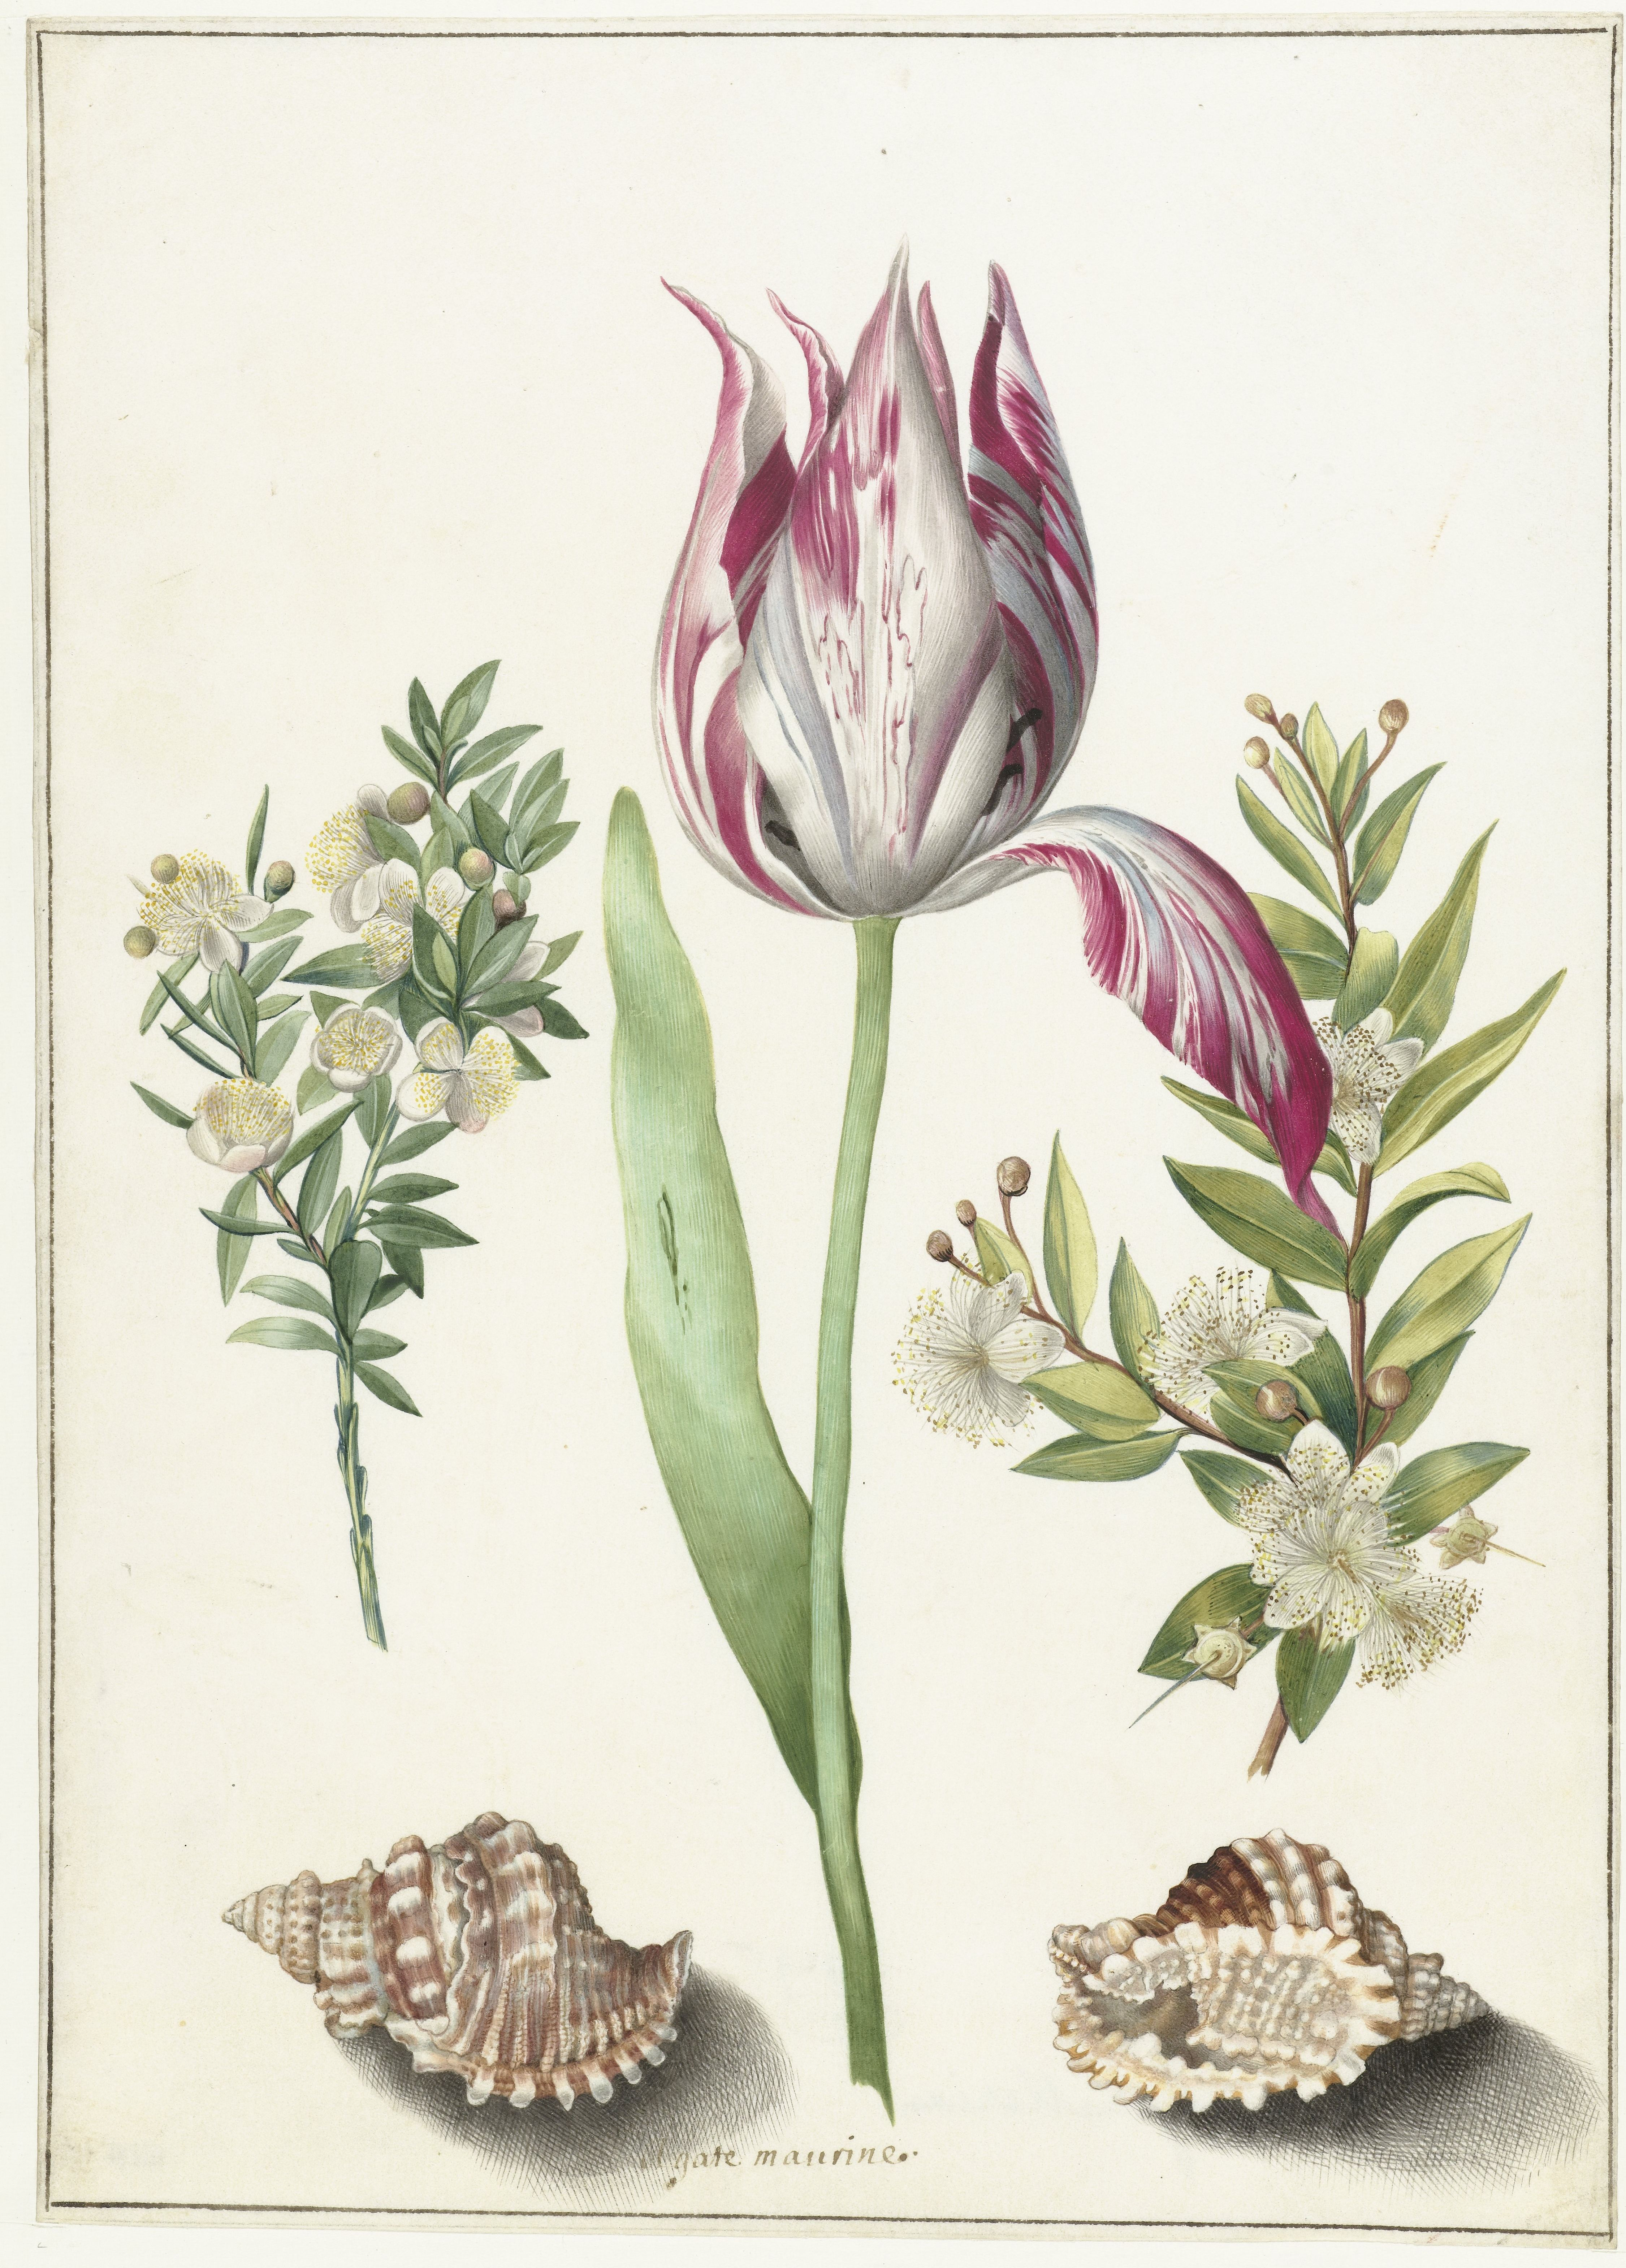 Tulip, two Branches of Myrtle and two Shells, Maria Sibylla Merian (attributed to) c. 1700. Rijksmuseum